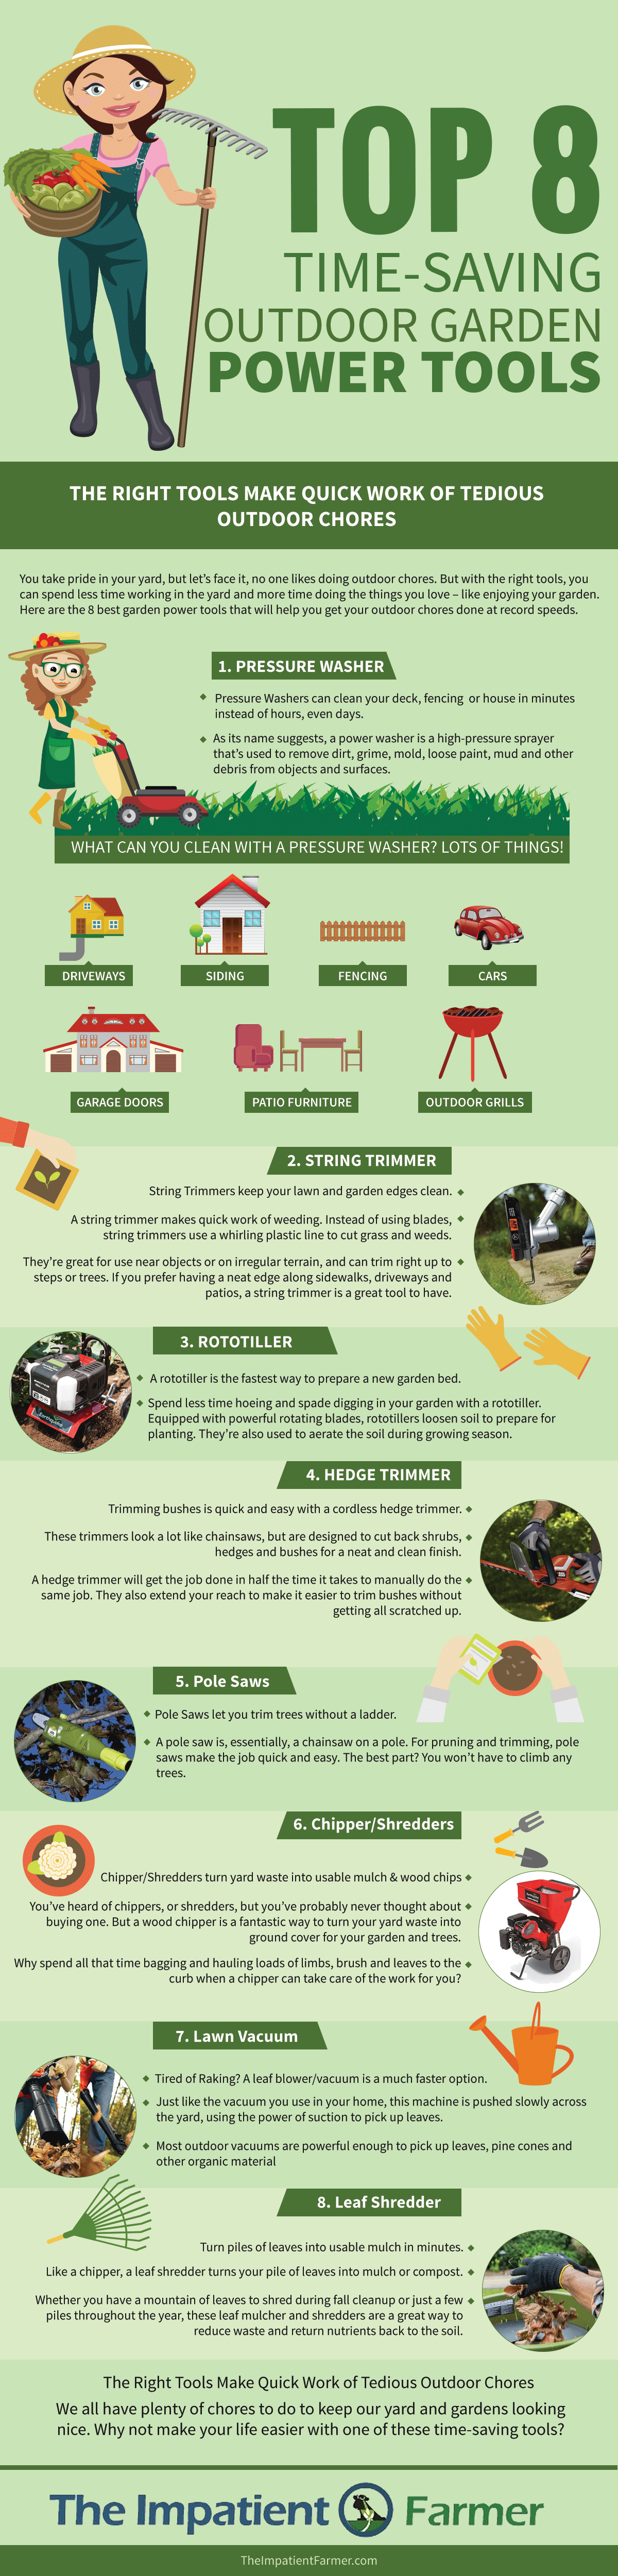 Best Garden Power Tools Infographic